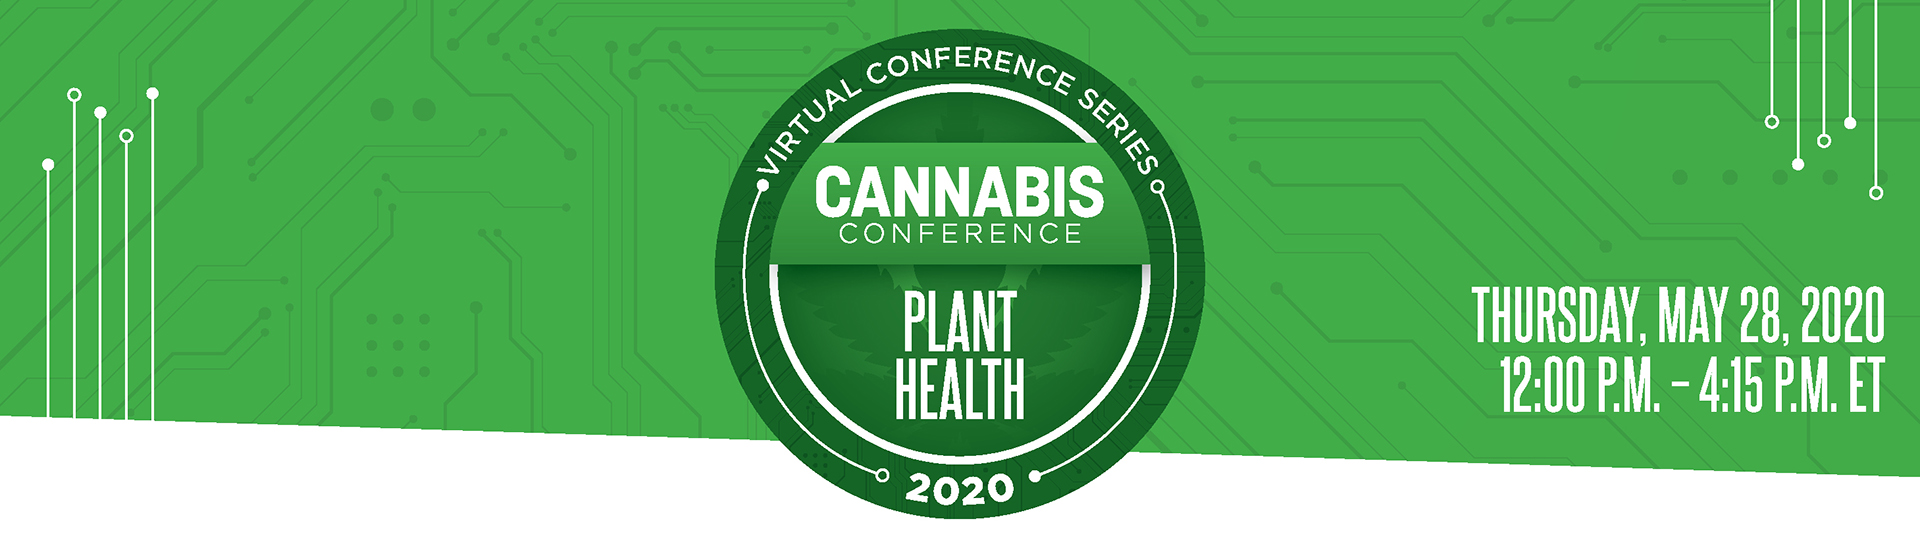 Cannabis Conference Plant Health